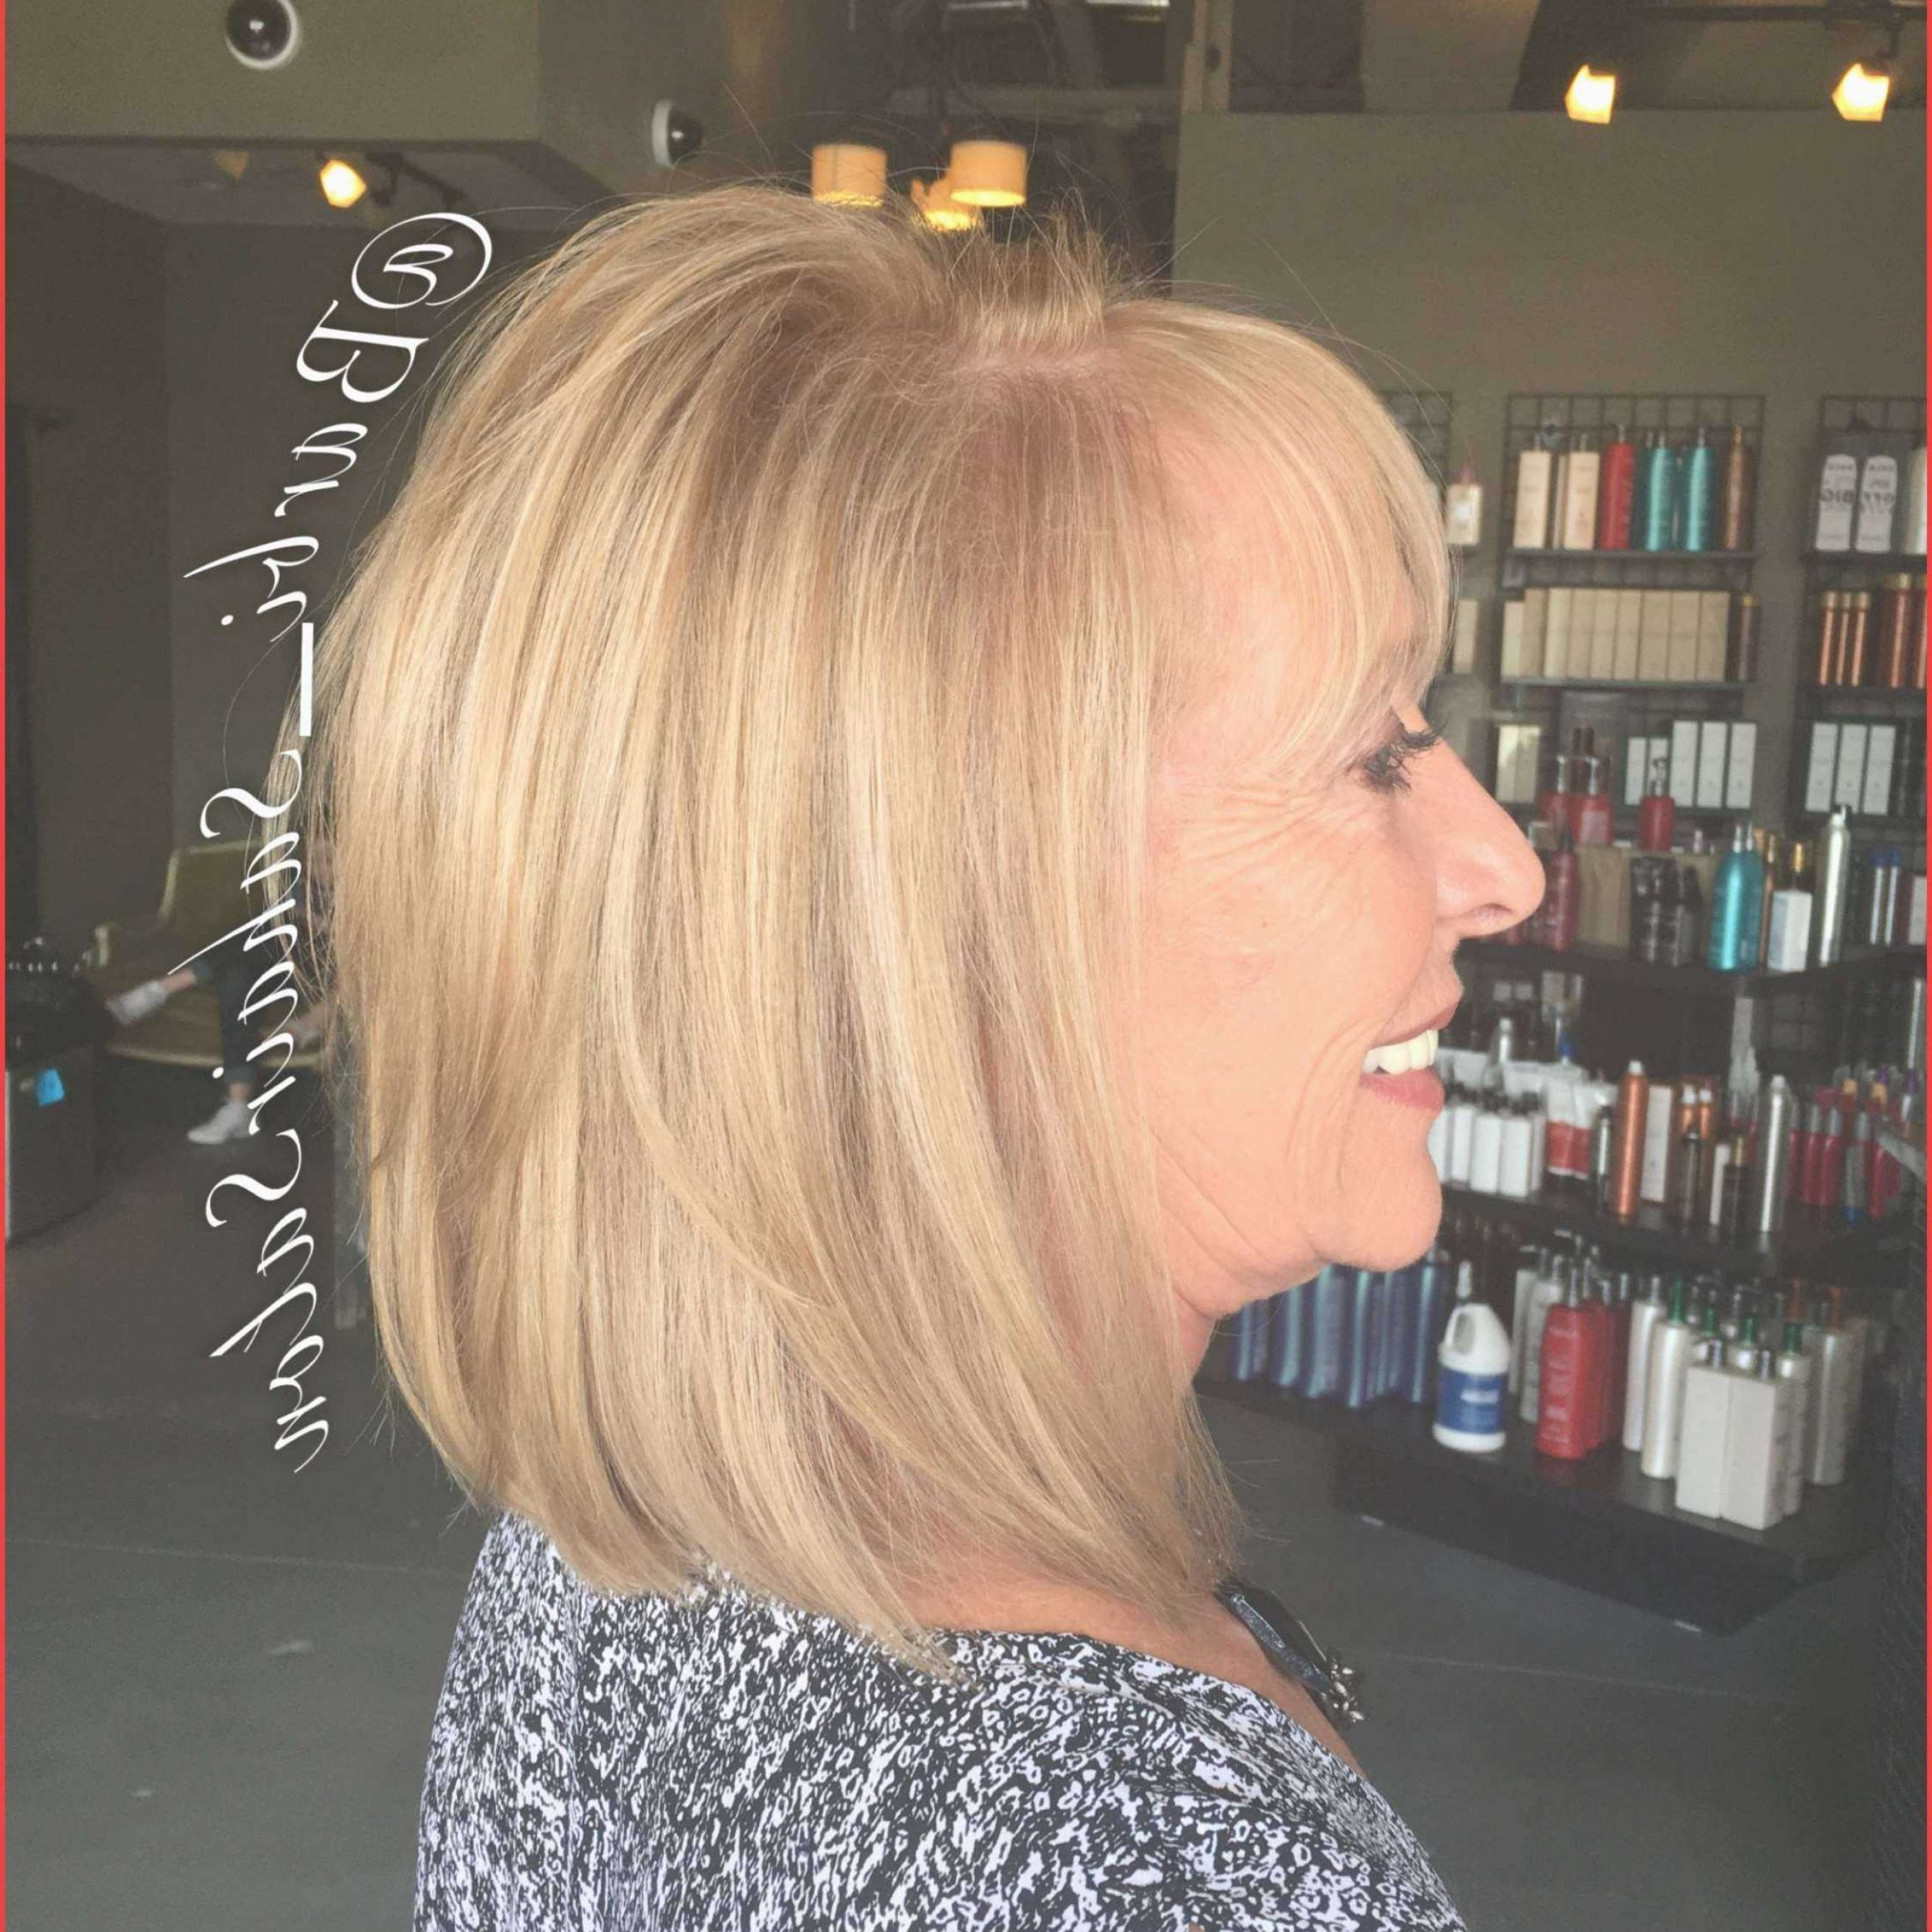 2017 Short And Medium Layers Haircuts For Fine Hair Within 33 Medium Length Layered Hairstyles For Thin Hair (View 2 of 20)